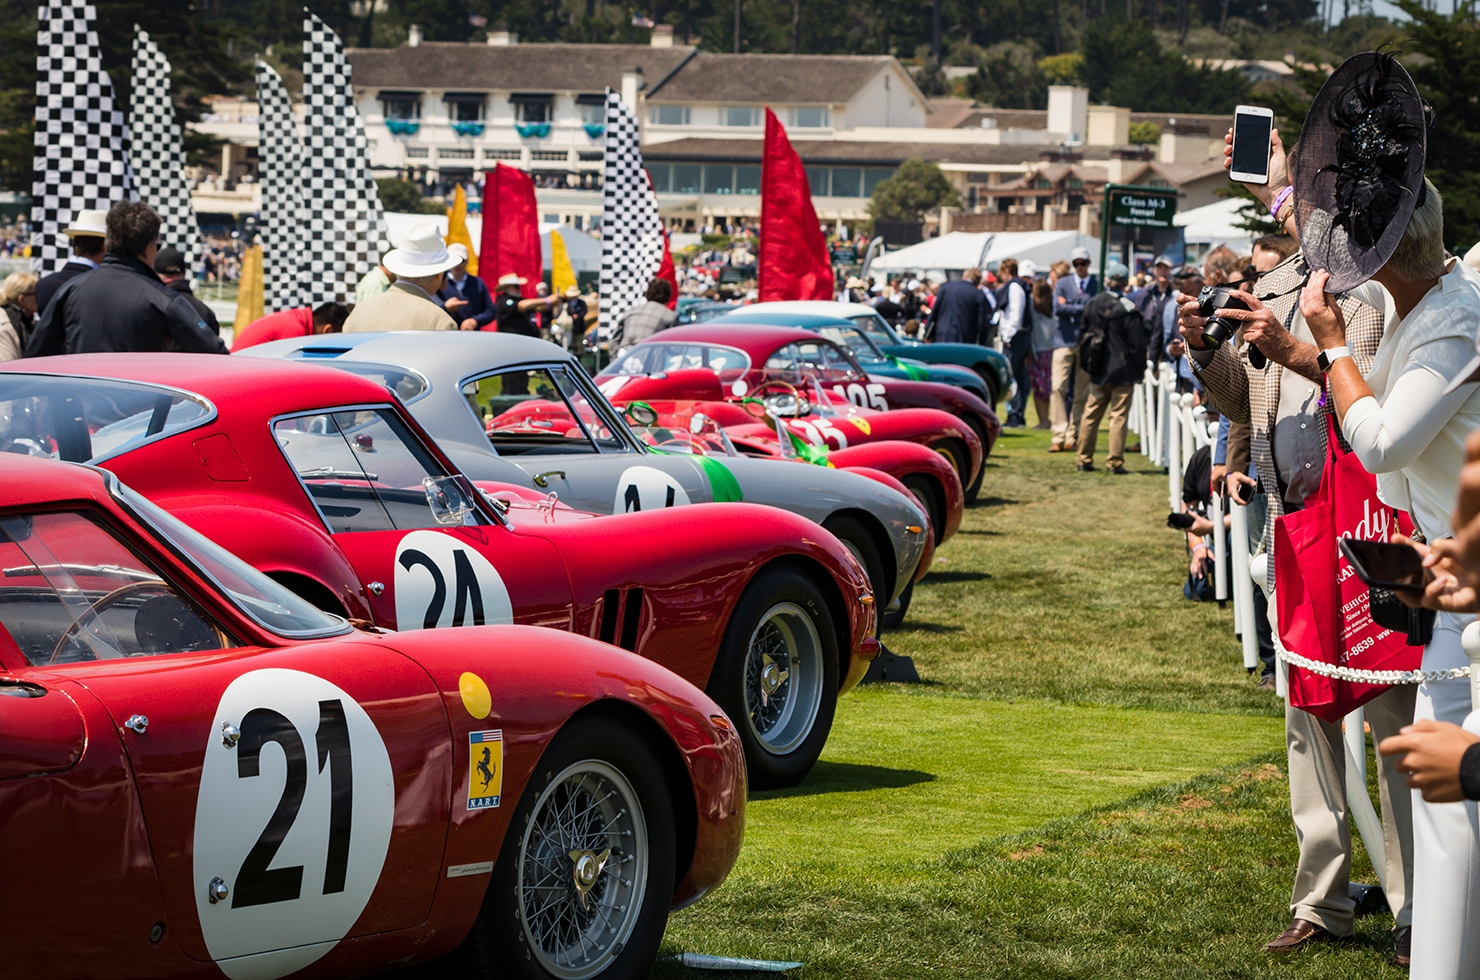 K Classic Cars Index A Guide To Classic Cars - Pebble beach car show 2018